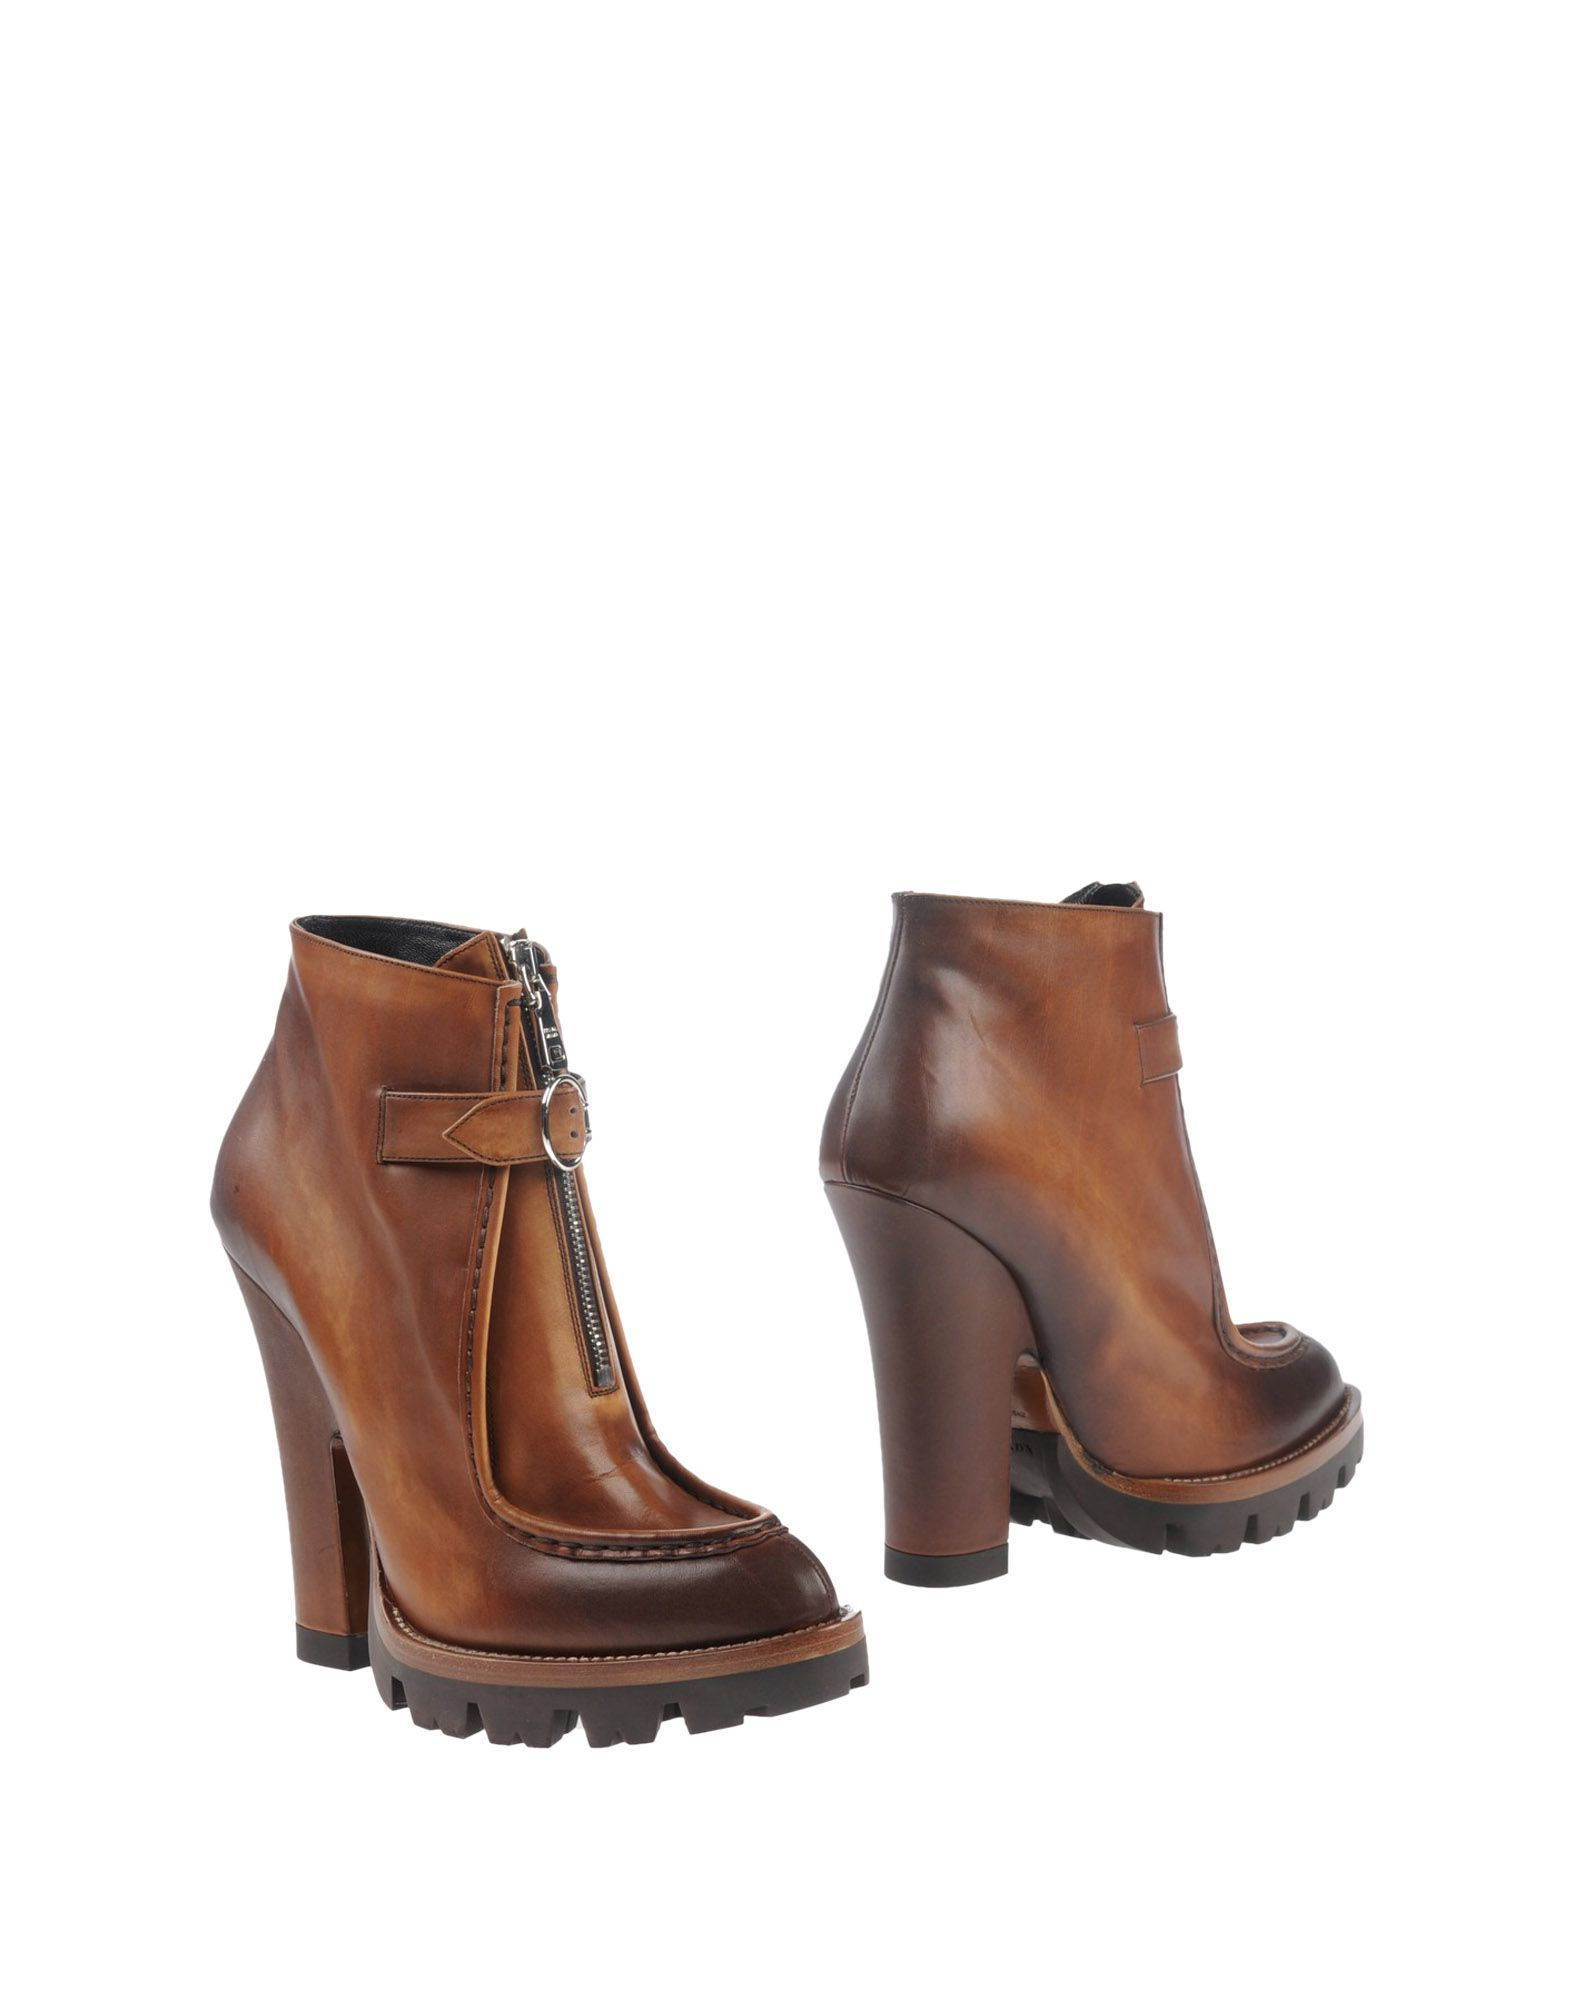 Prada Ankle Boots in Brown | Lyst